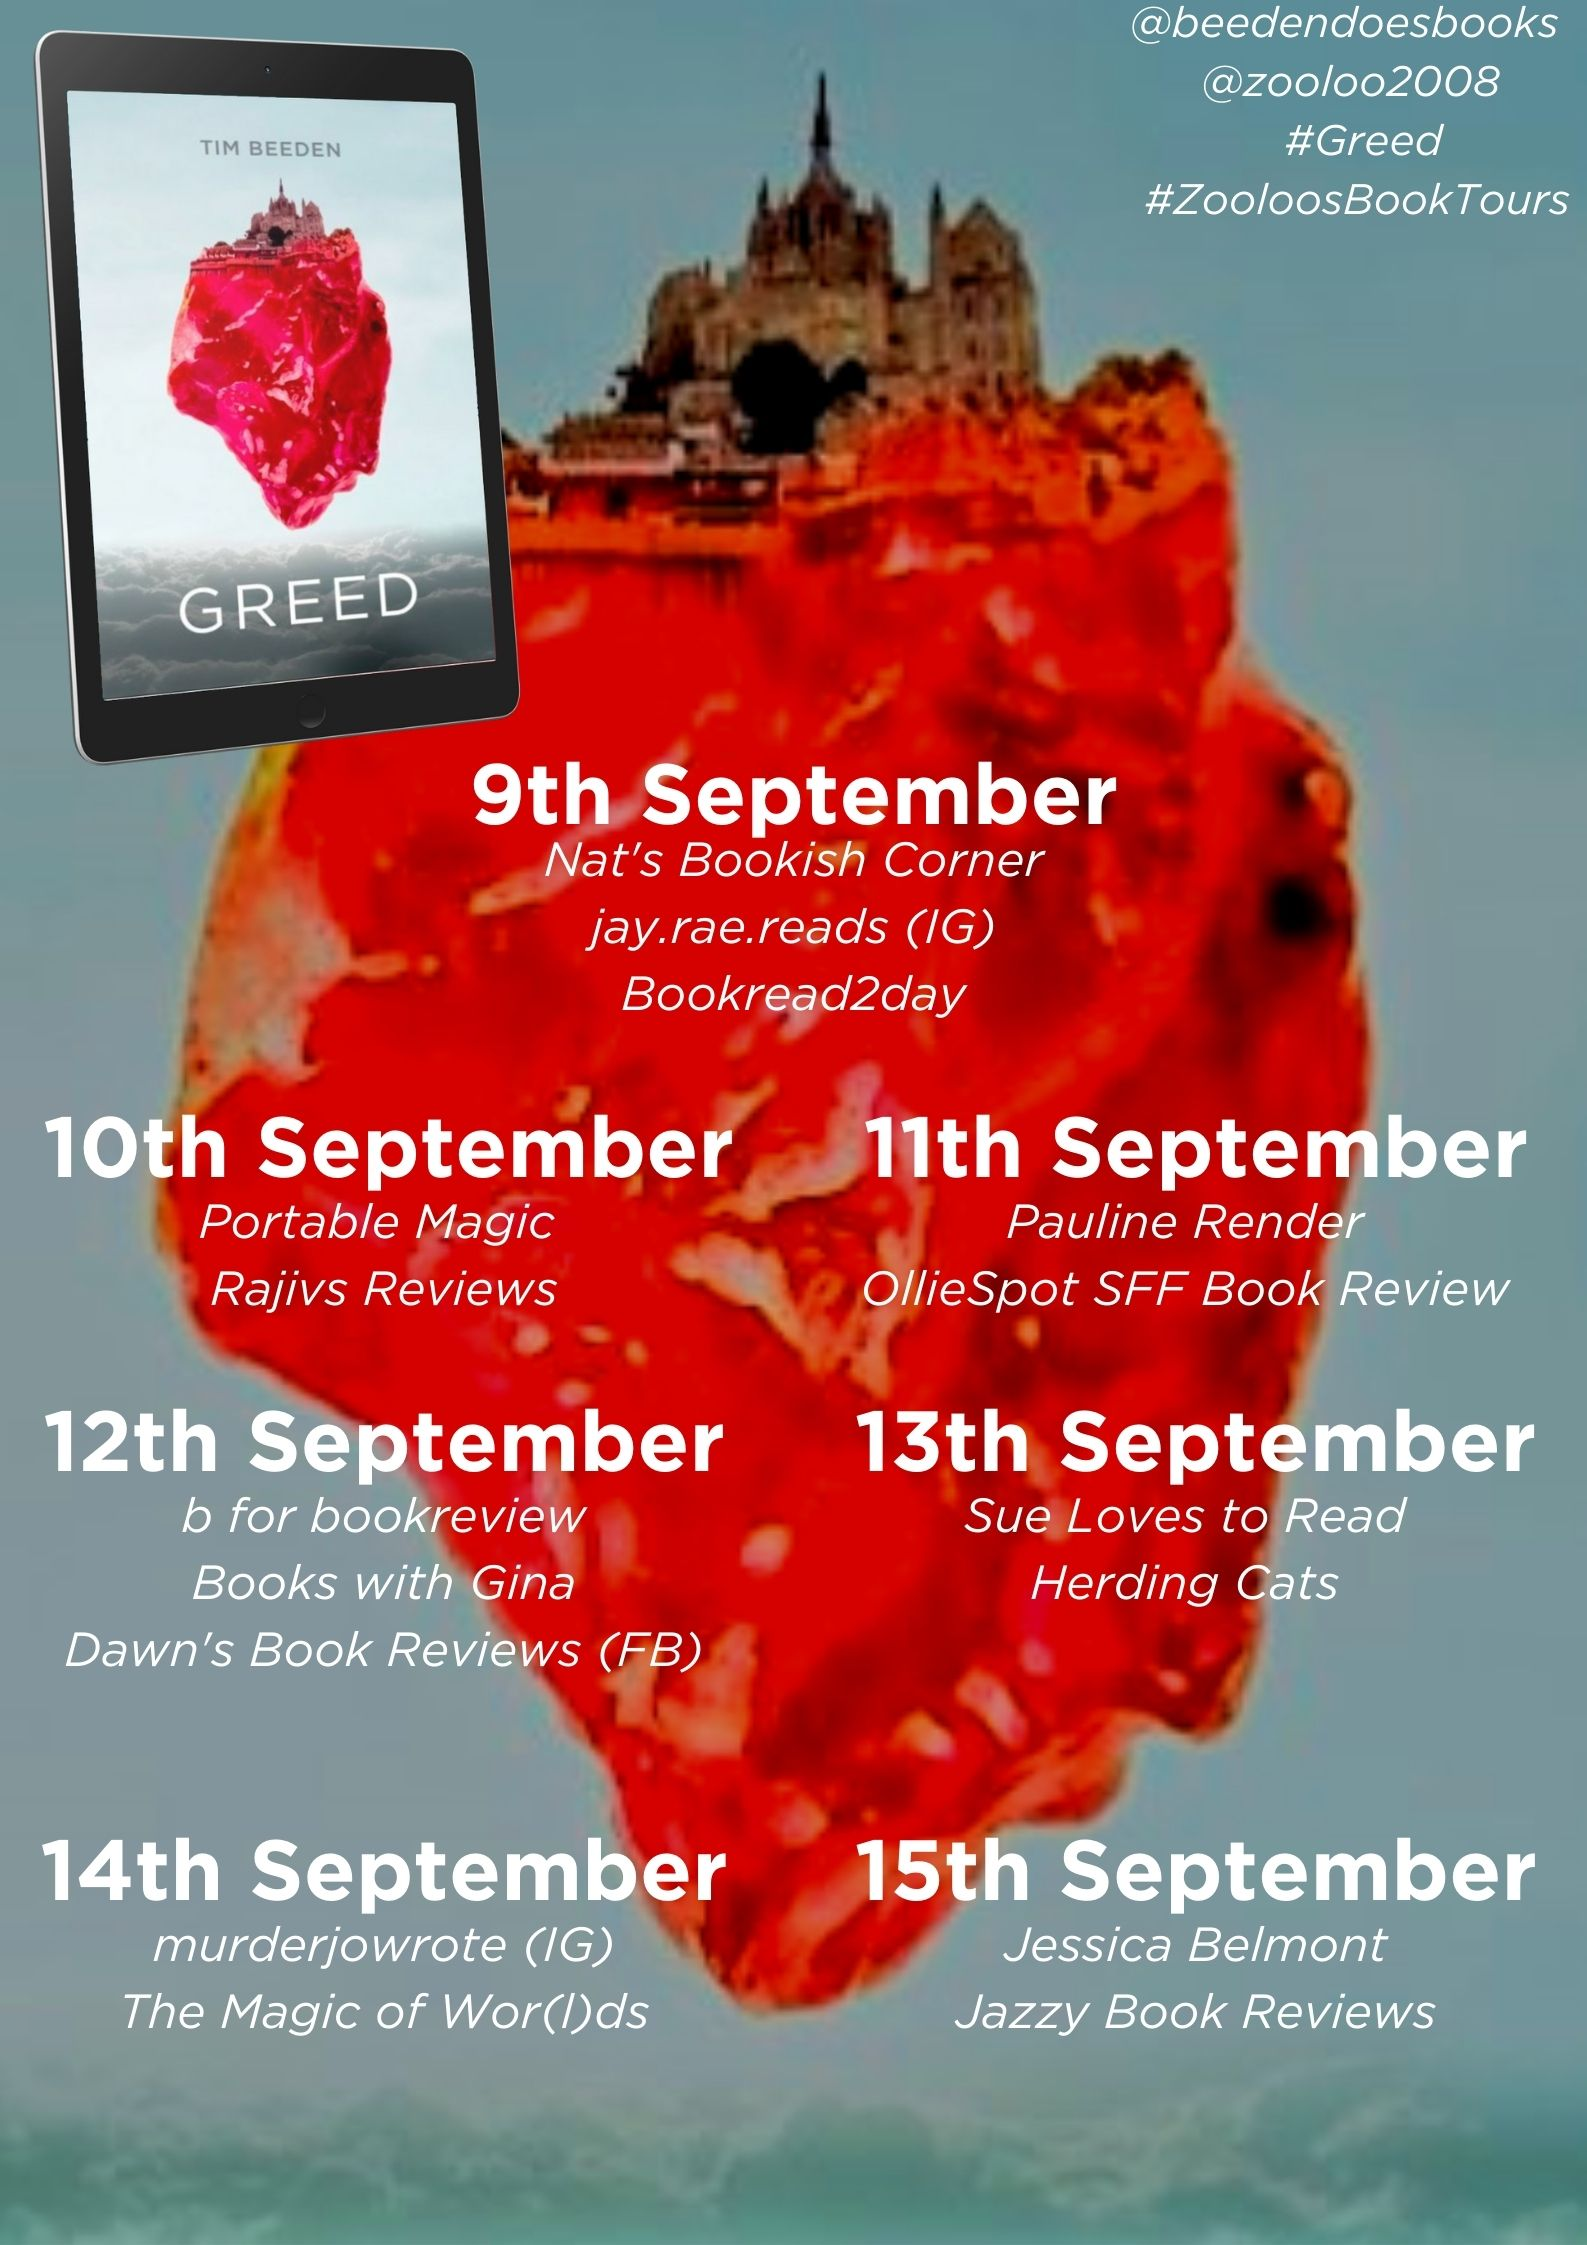 Greed Book Tour Poster